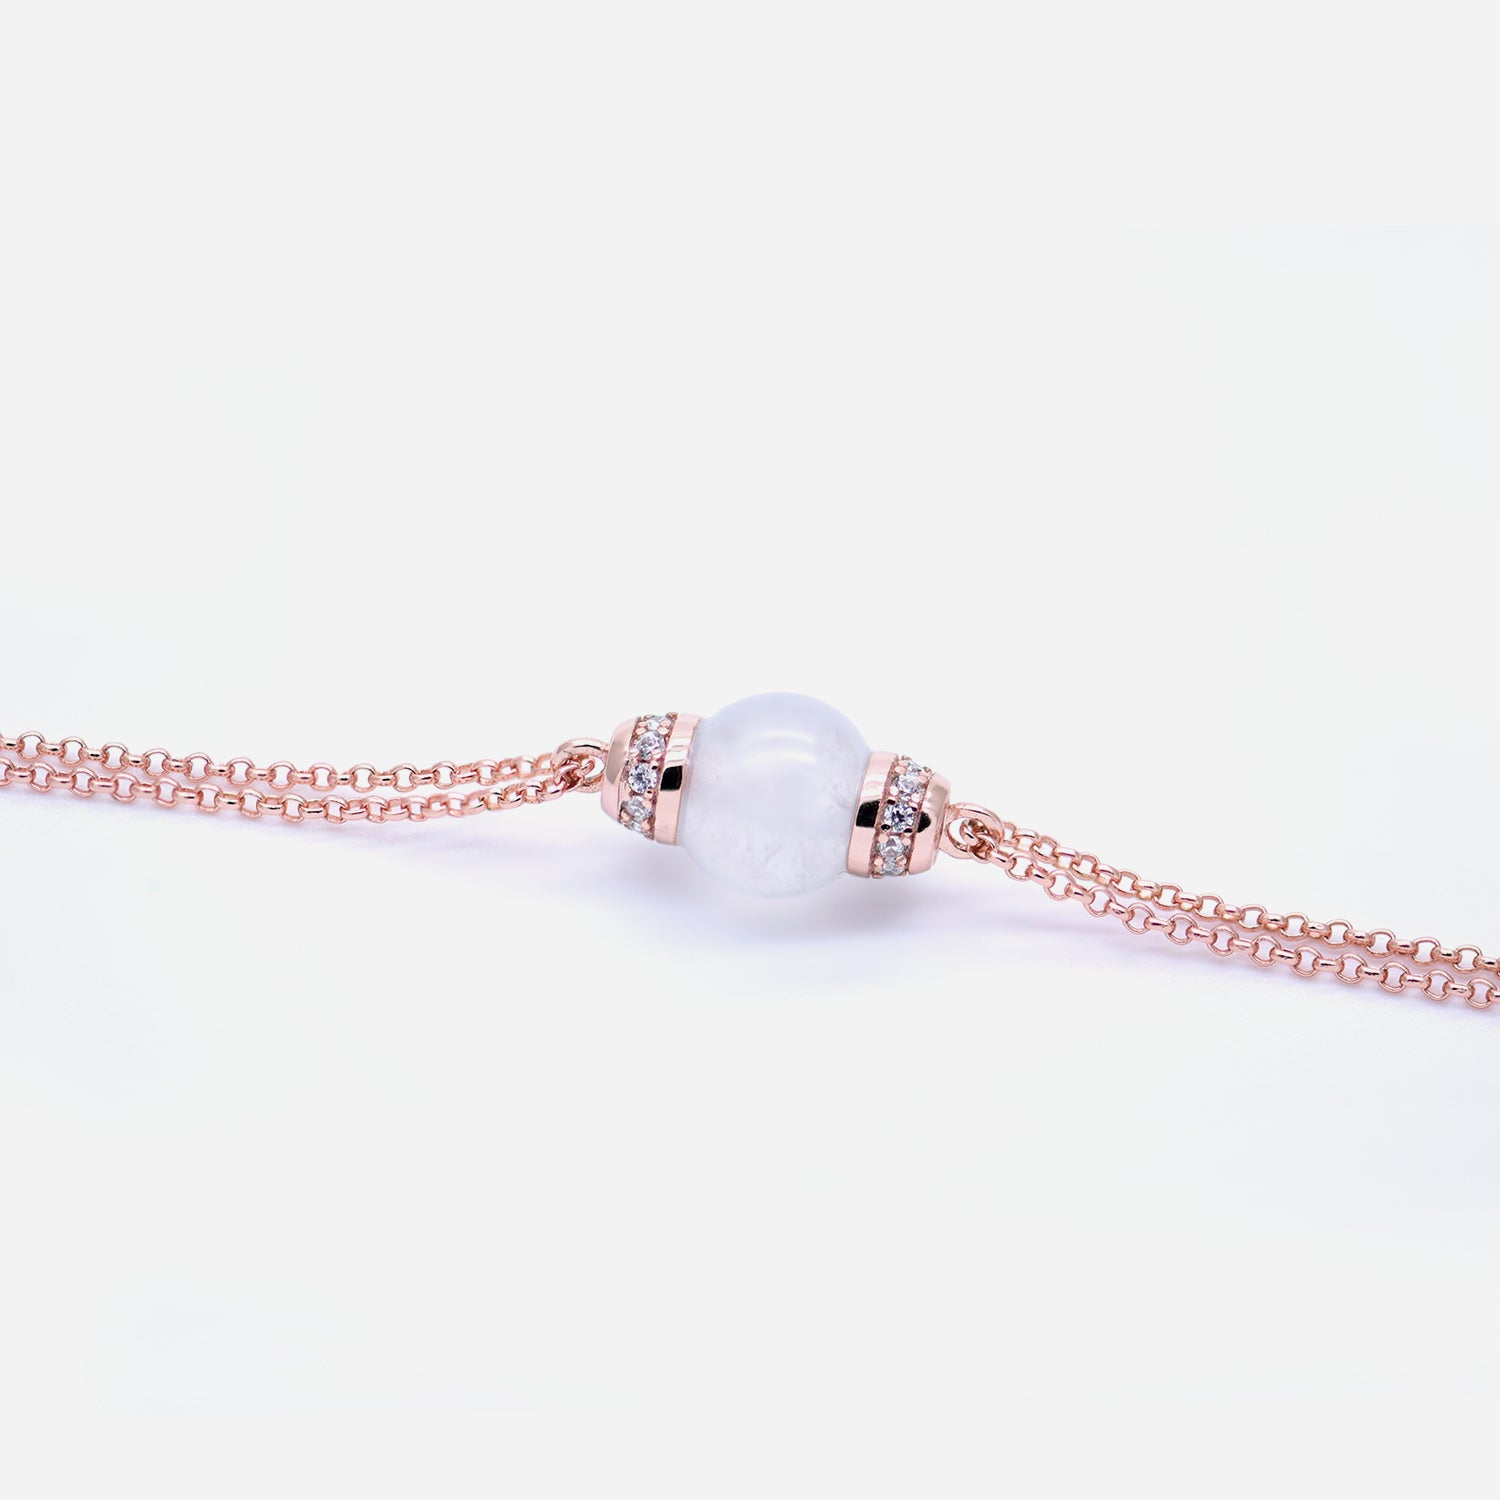 EDEN 悅 Bracelet in Ice White Jade